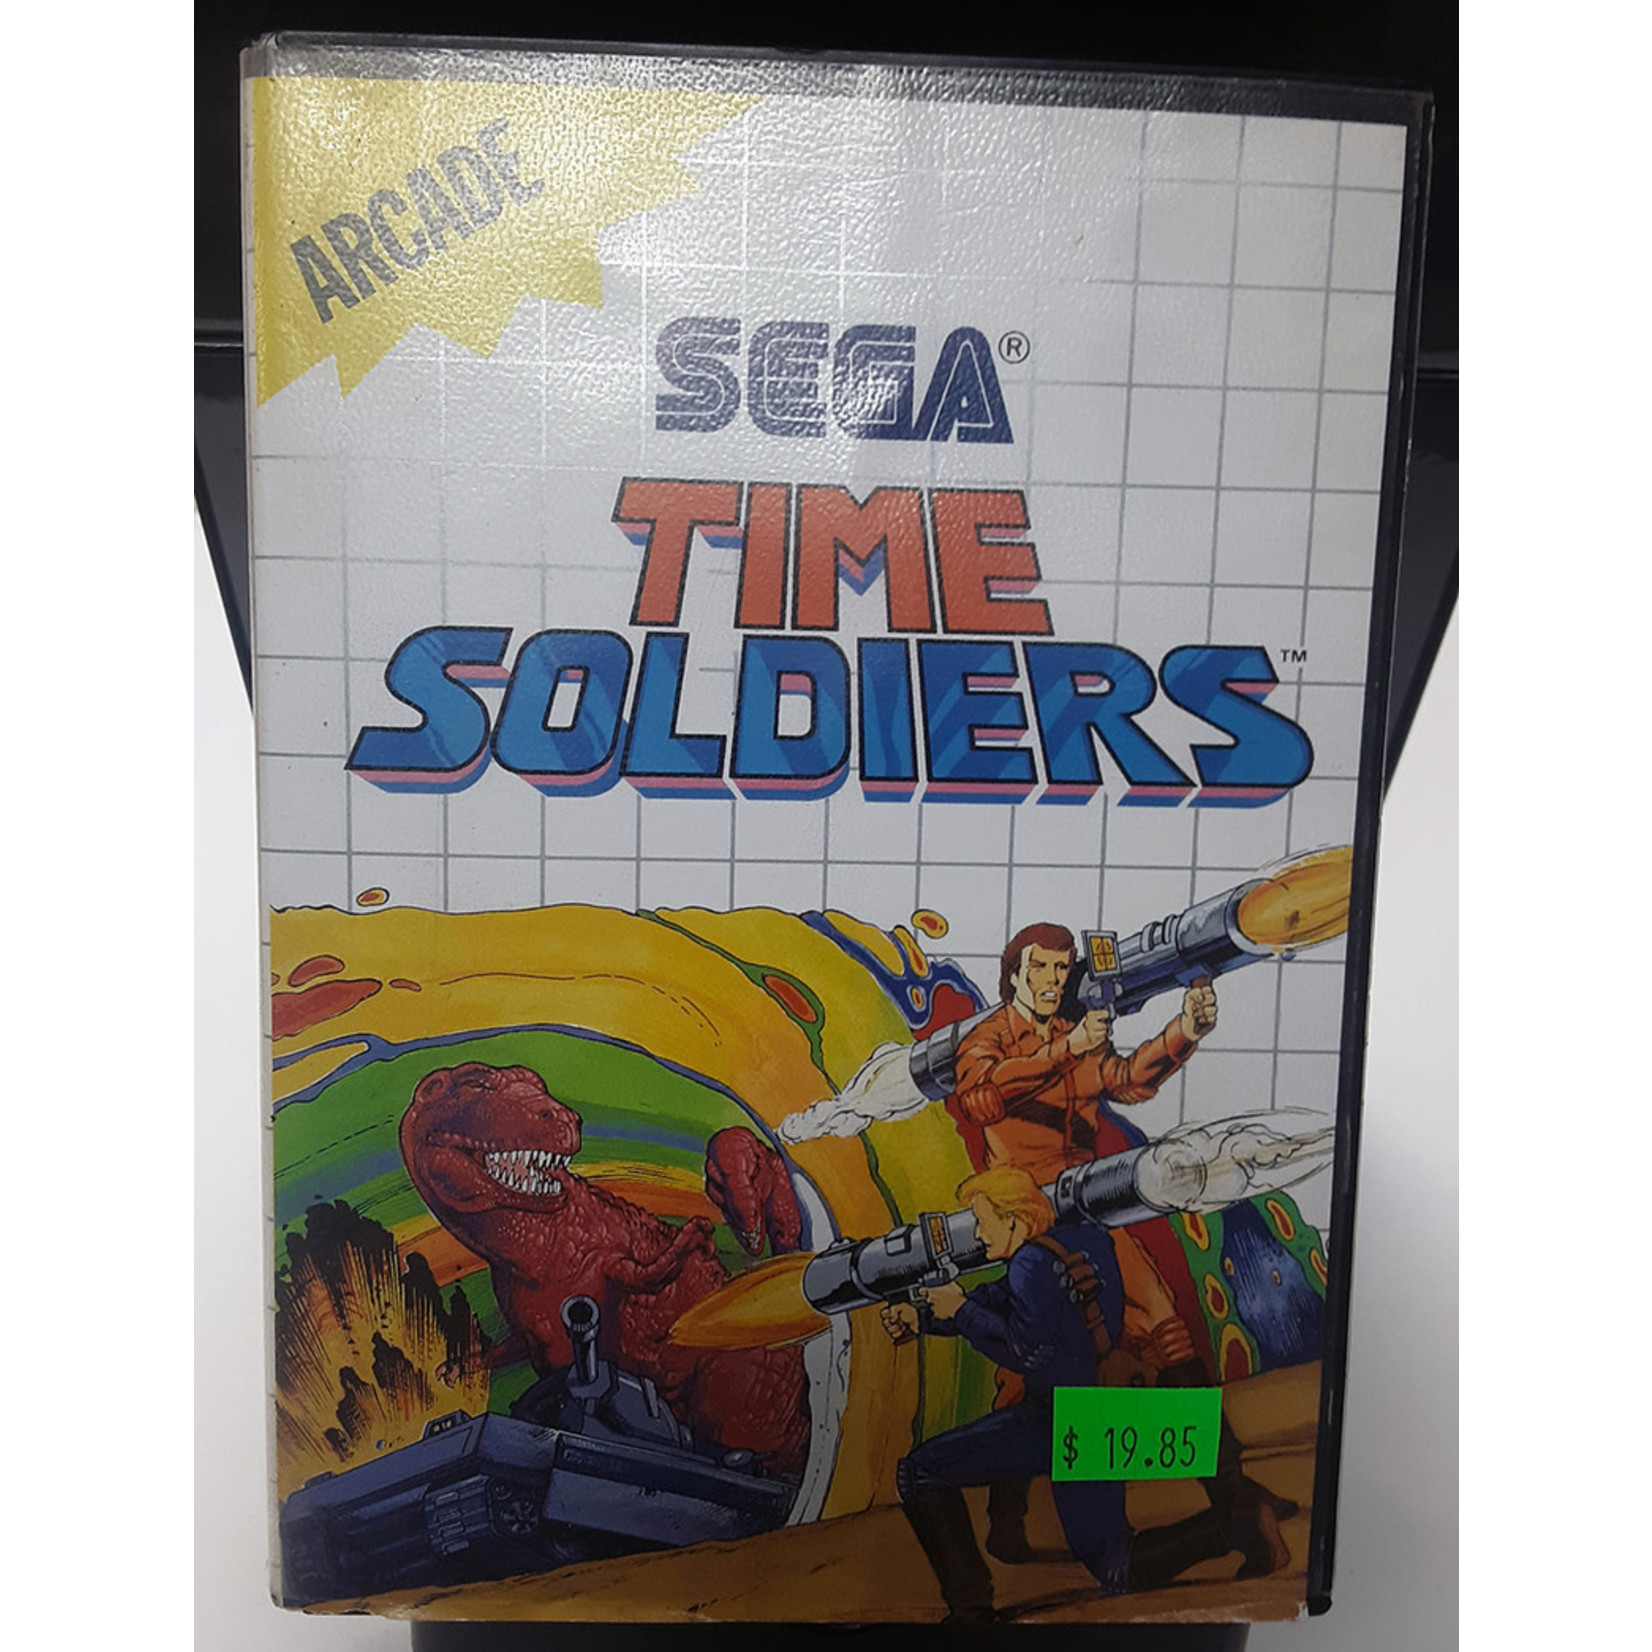 SMU-Time Soldiers (in box)